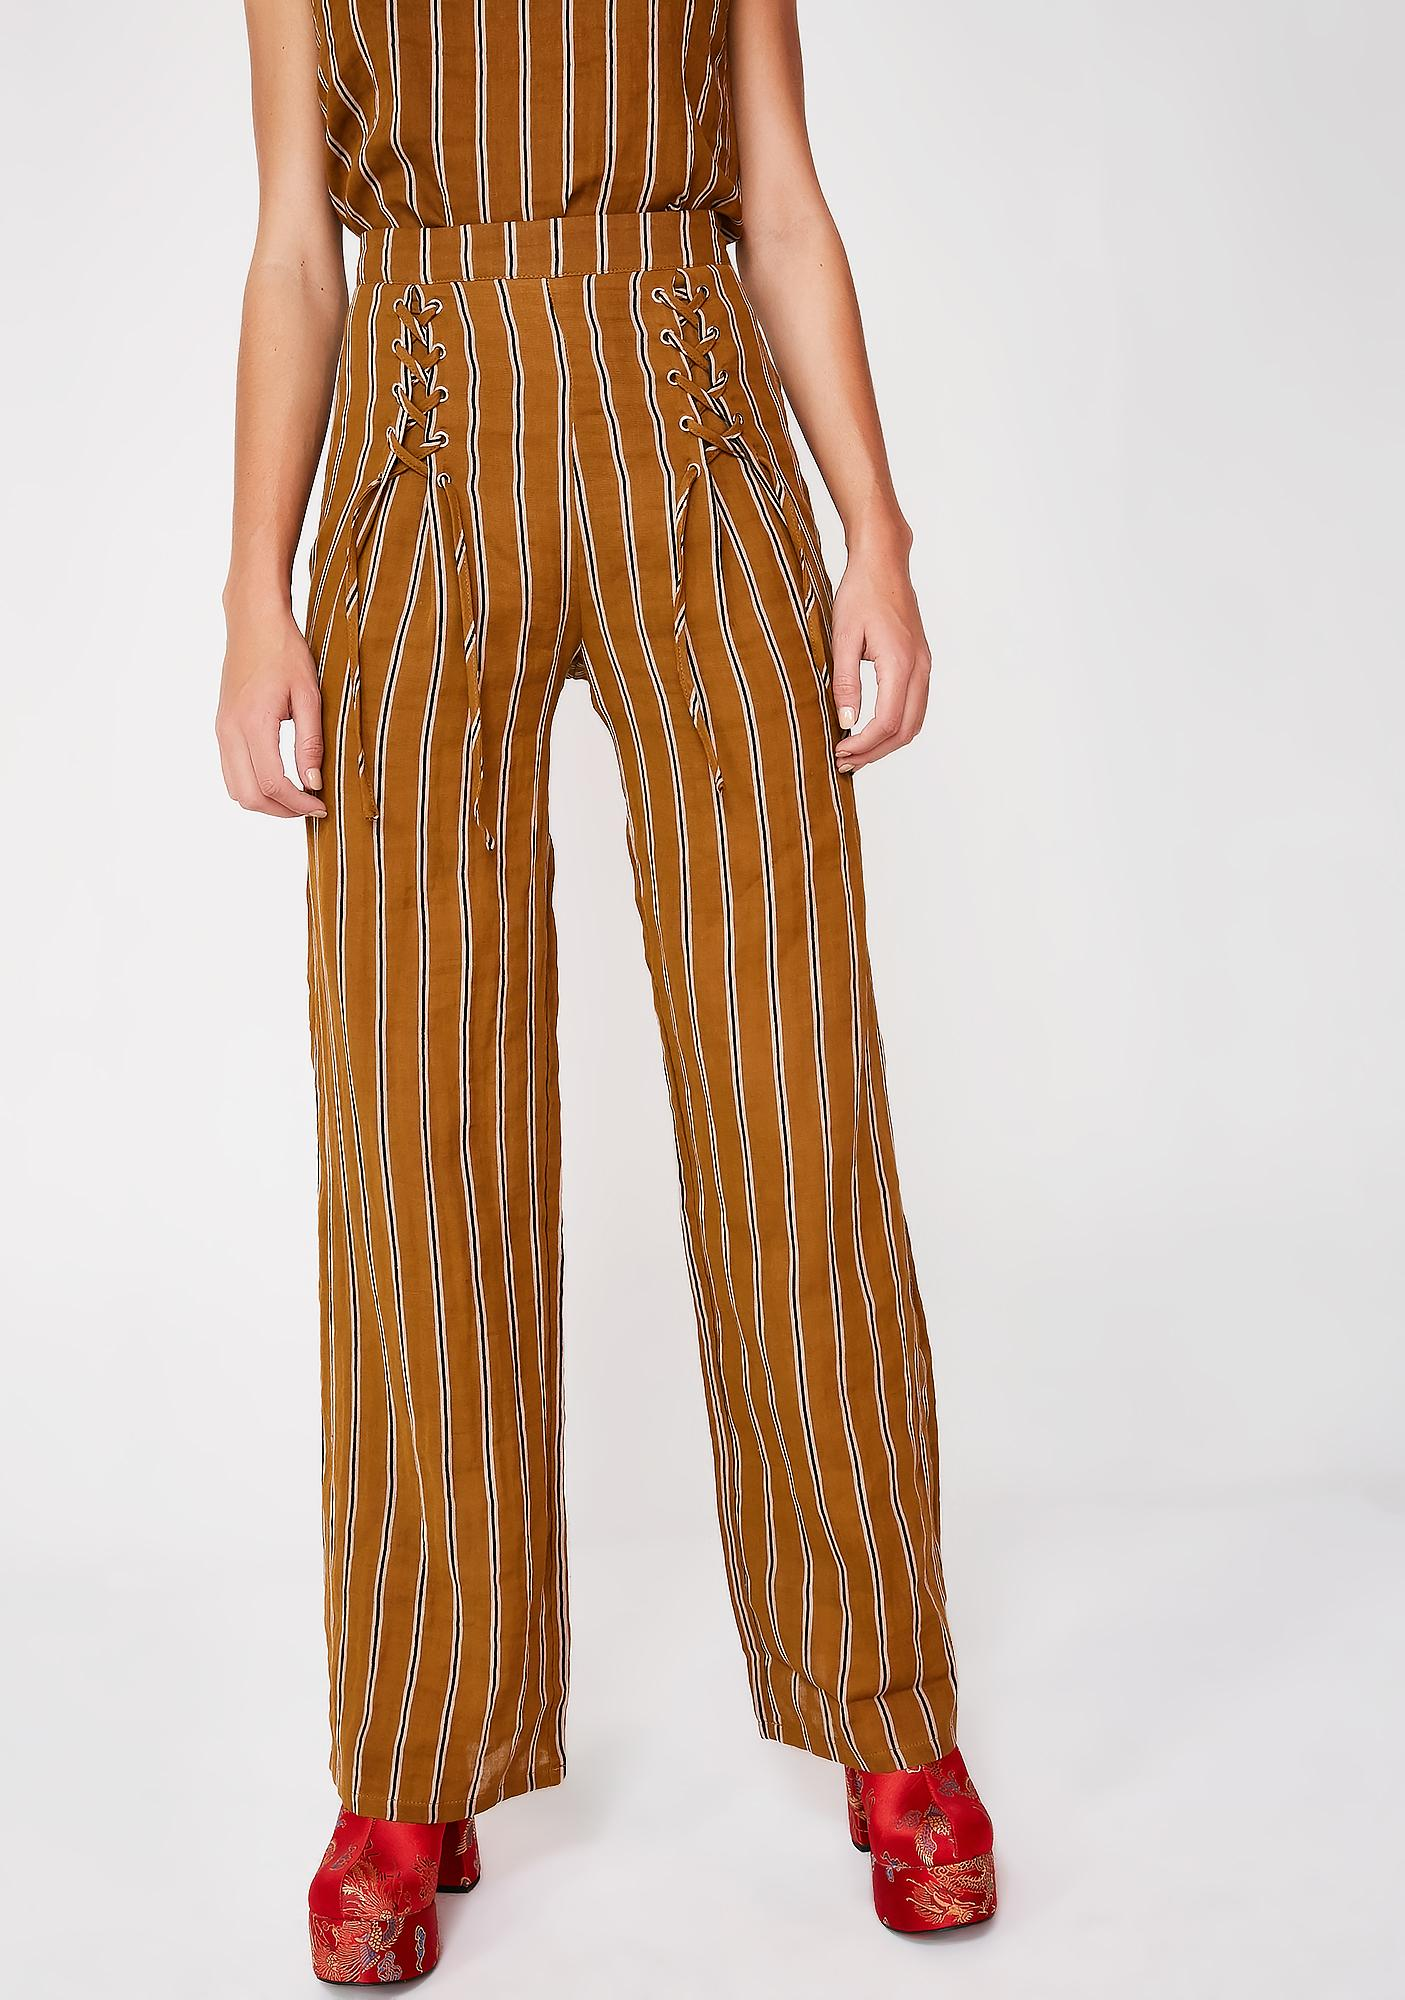 Oh So Foxy Tie Up Pants